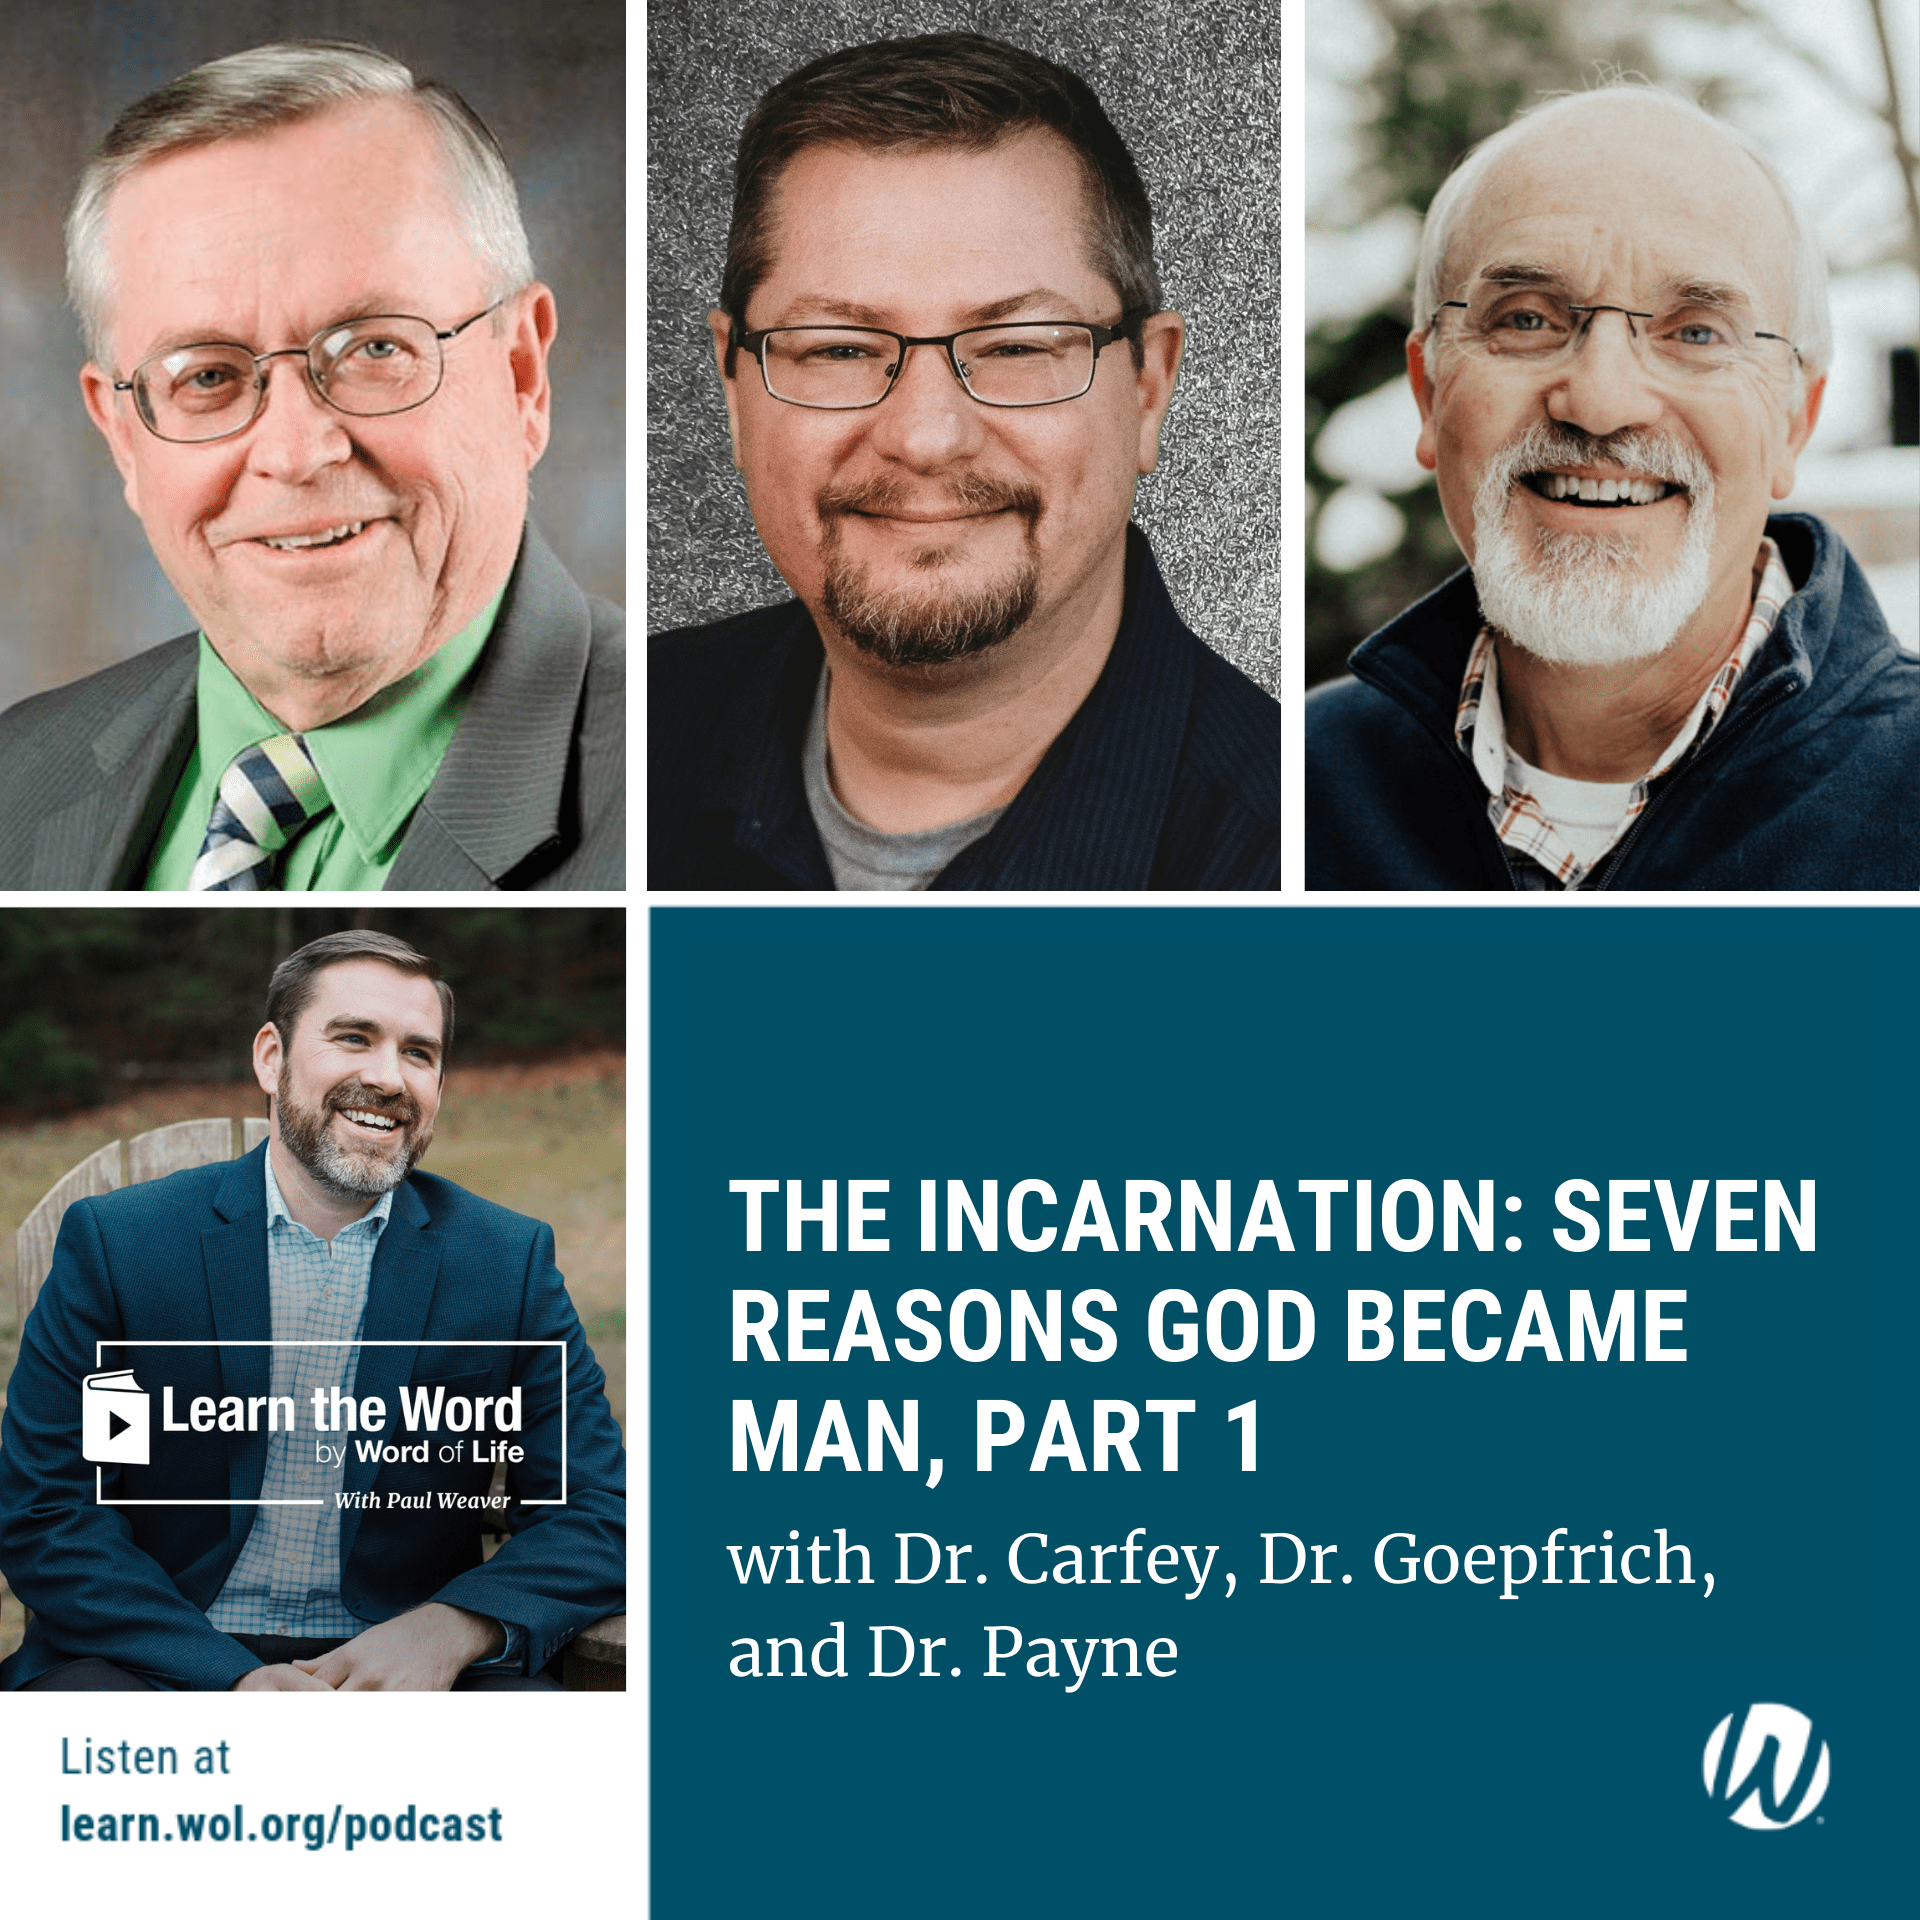 LTW149 - The Incarnation: Seven Reasons God Became Man, Part 1 – with Dr. Carfrey, Dr. Goepfrich, and Dr. Payne podcast cover art